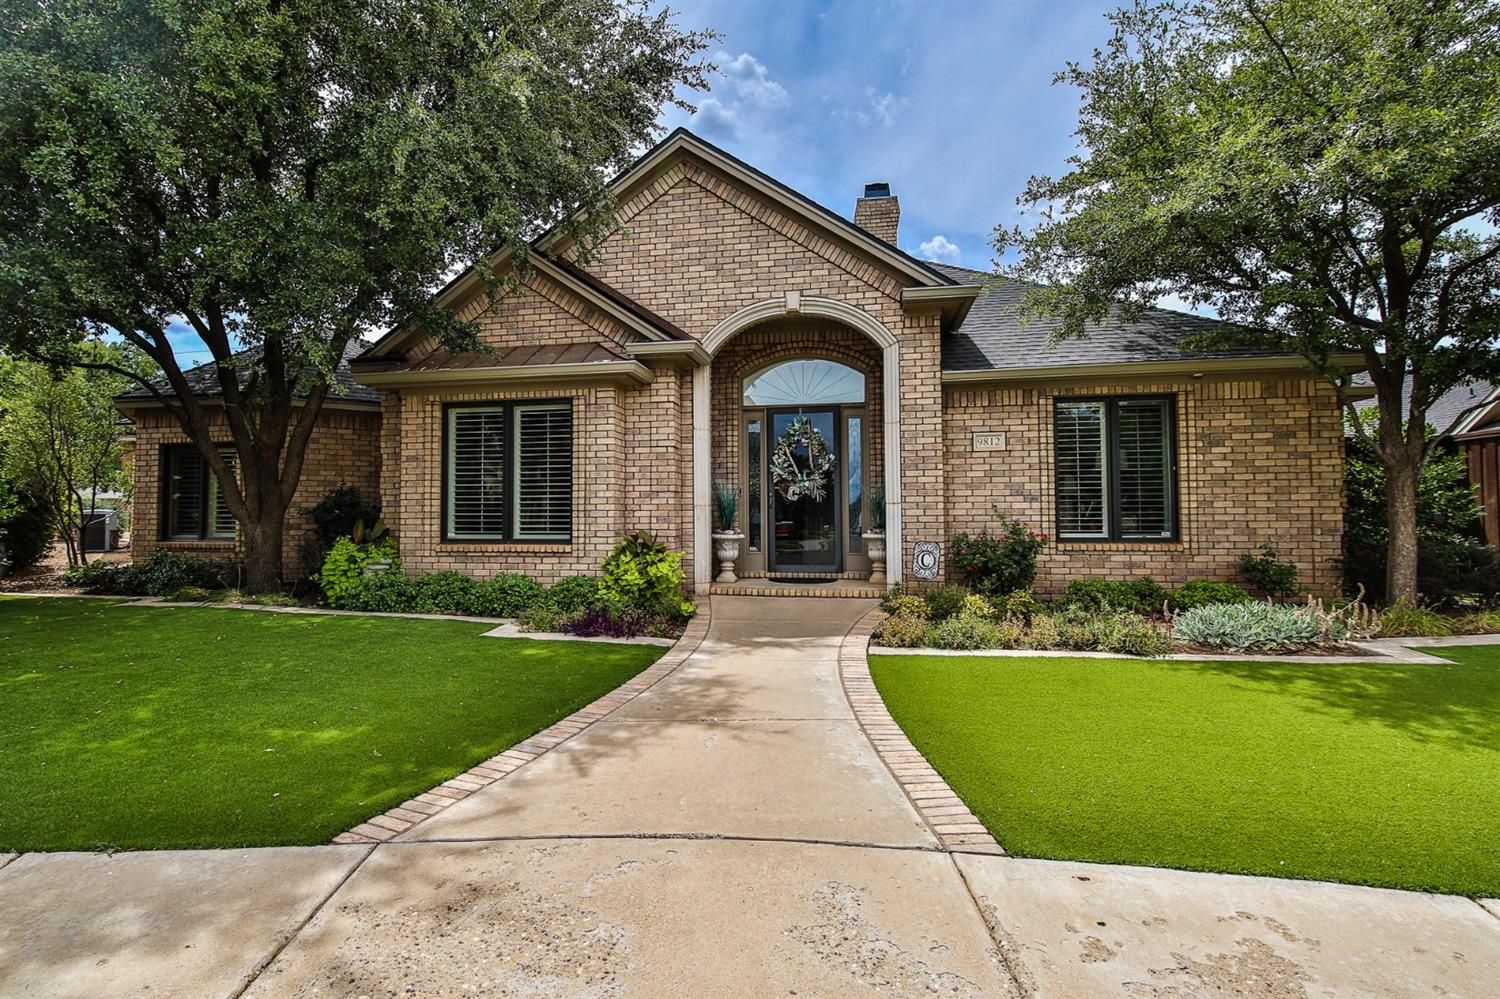 Absolutely Gorgeous custom built home in the prestigious community of Lakeridge Estates. Some of the many outstanding features include a chef's kitchen with walk in pantry, big granite island, large study, basement, and each bedroom has it's own dedicated full bathroom.  To go along with the stunning interior is the dreamy backyard! West Texas sunsets will never be the  same in this backyard that includes an outdoor kitchen, hot tub, and fireplace.  This show stopper is a MUST SEE!